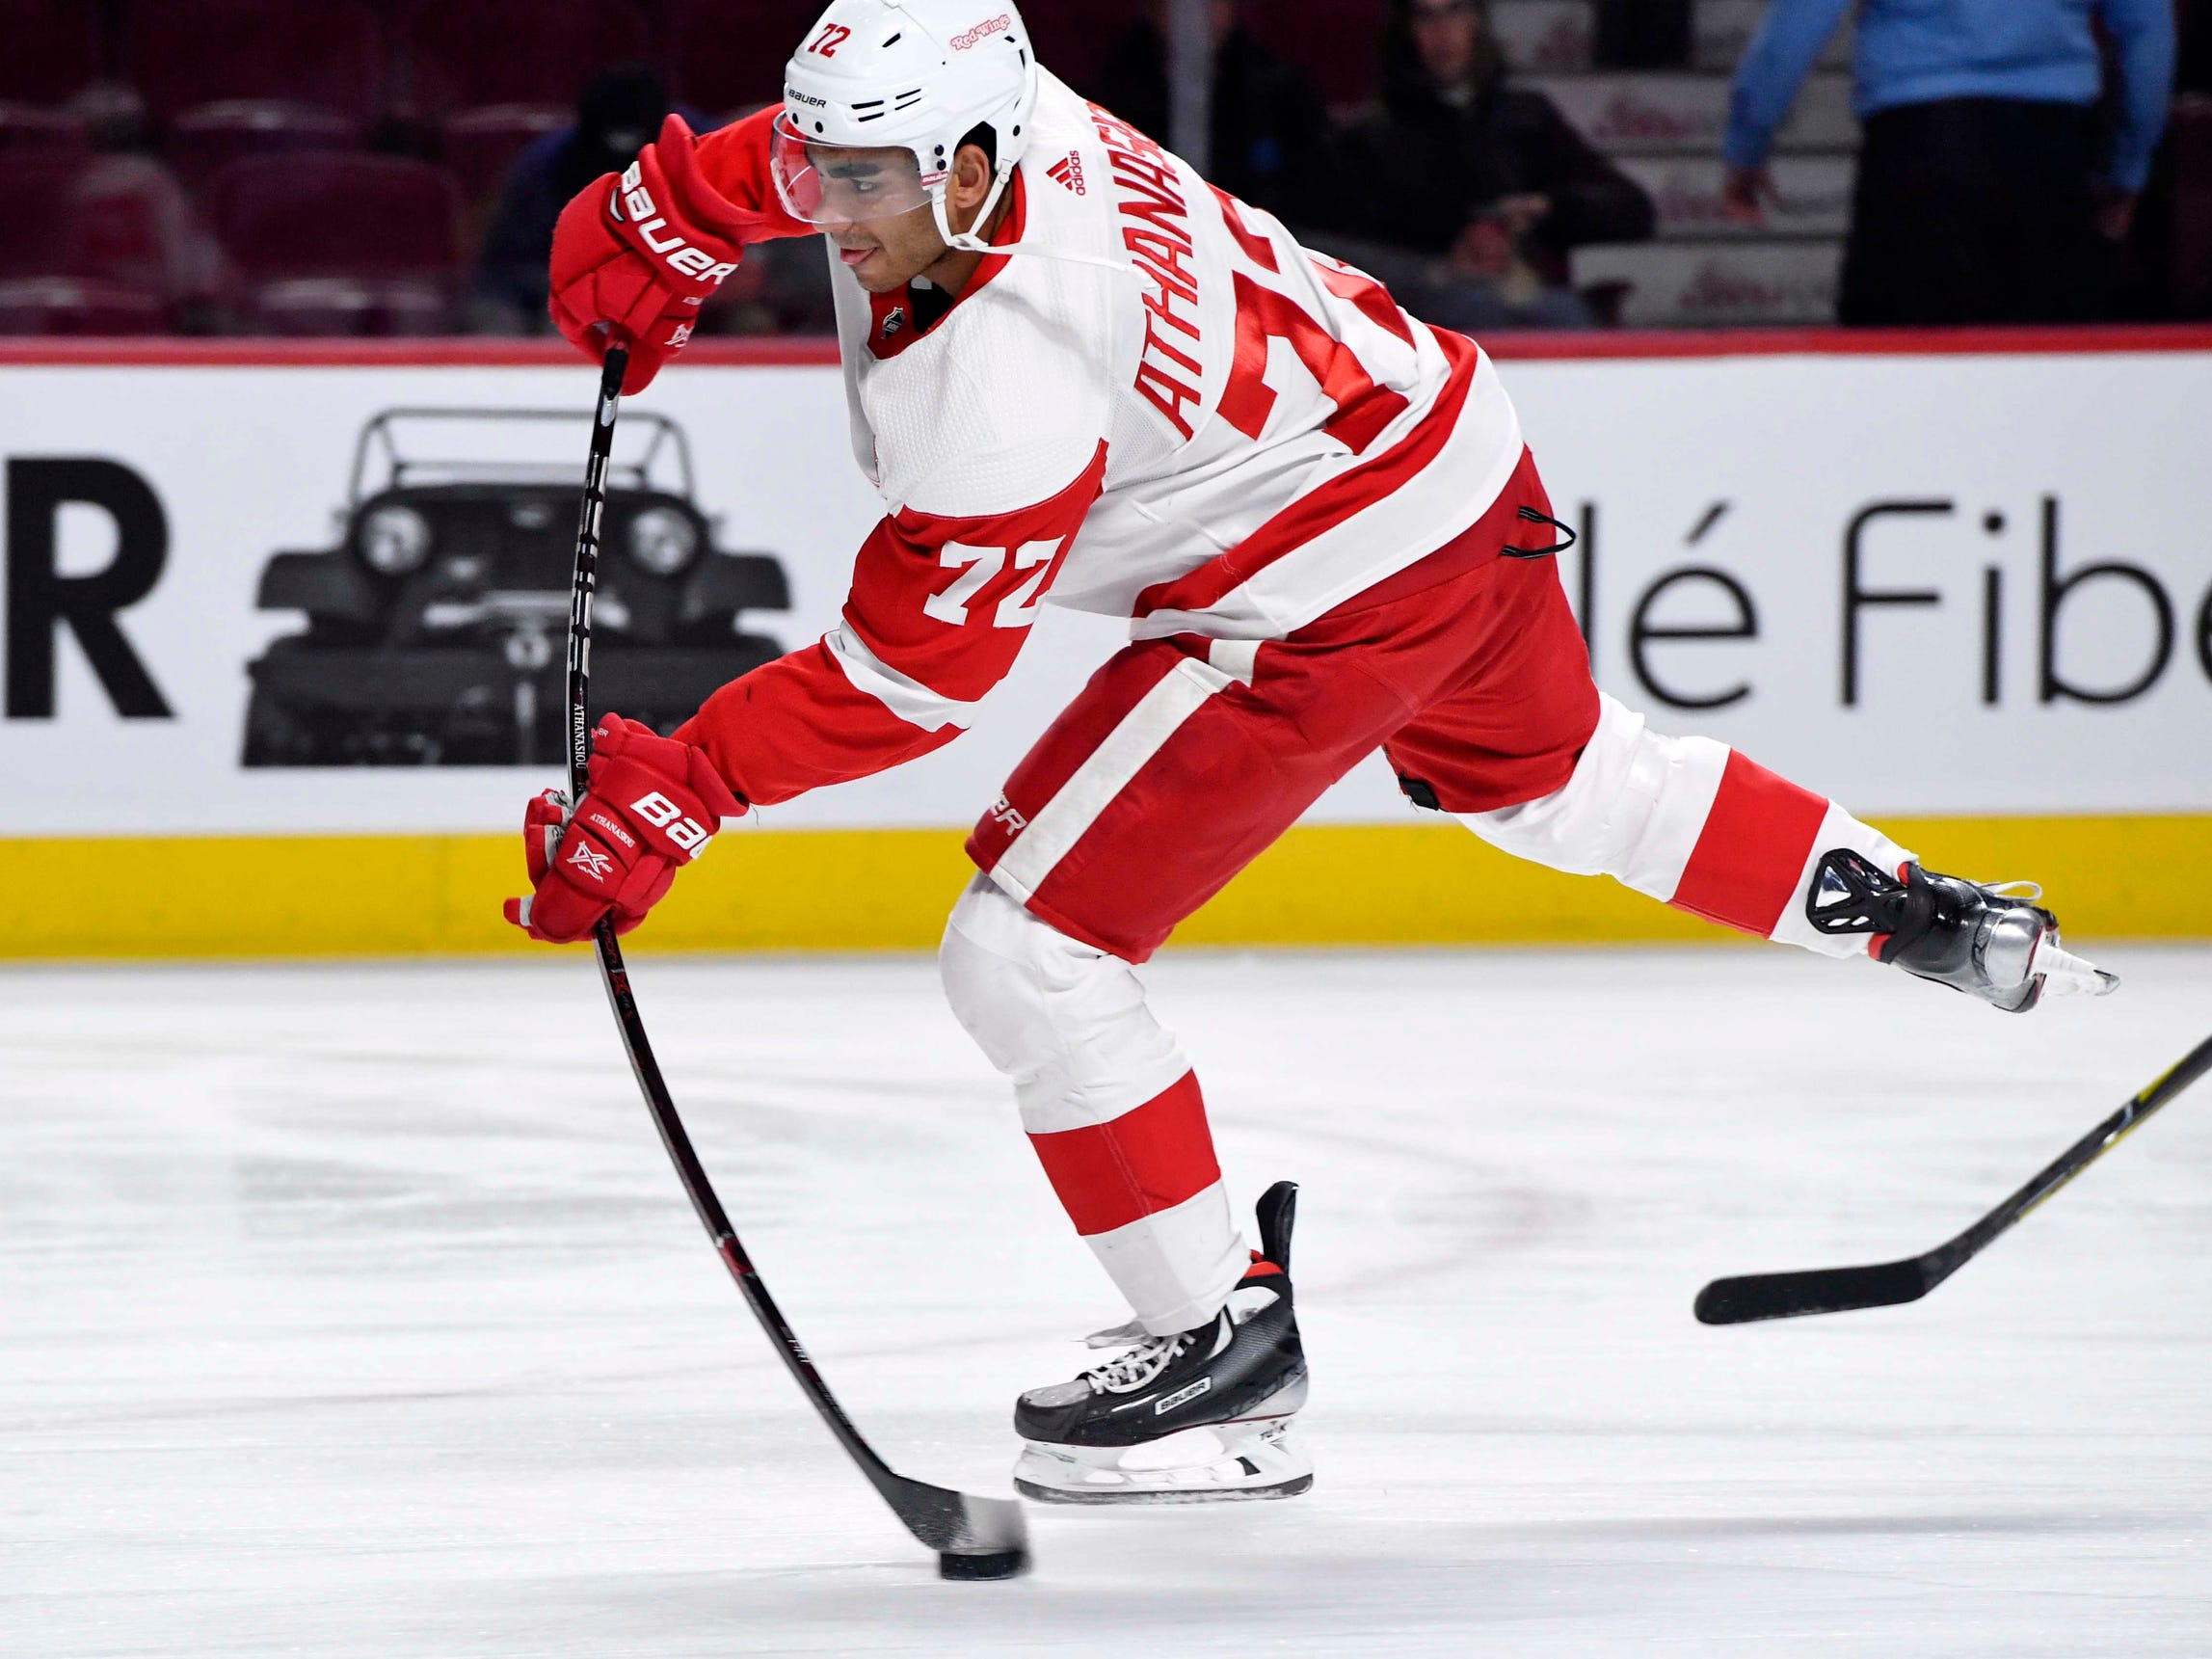 Detroit Red Wings forward Andreas Athanasiou shoots a puck during warmups before the game against the Montreal Canadiens at the Bell Centre, March 12, 2019 in Montreal.